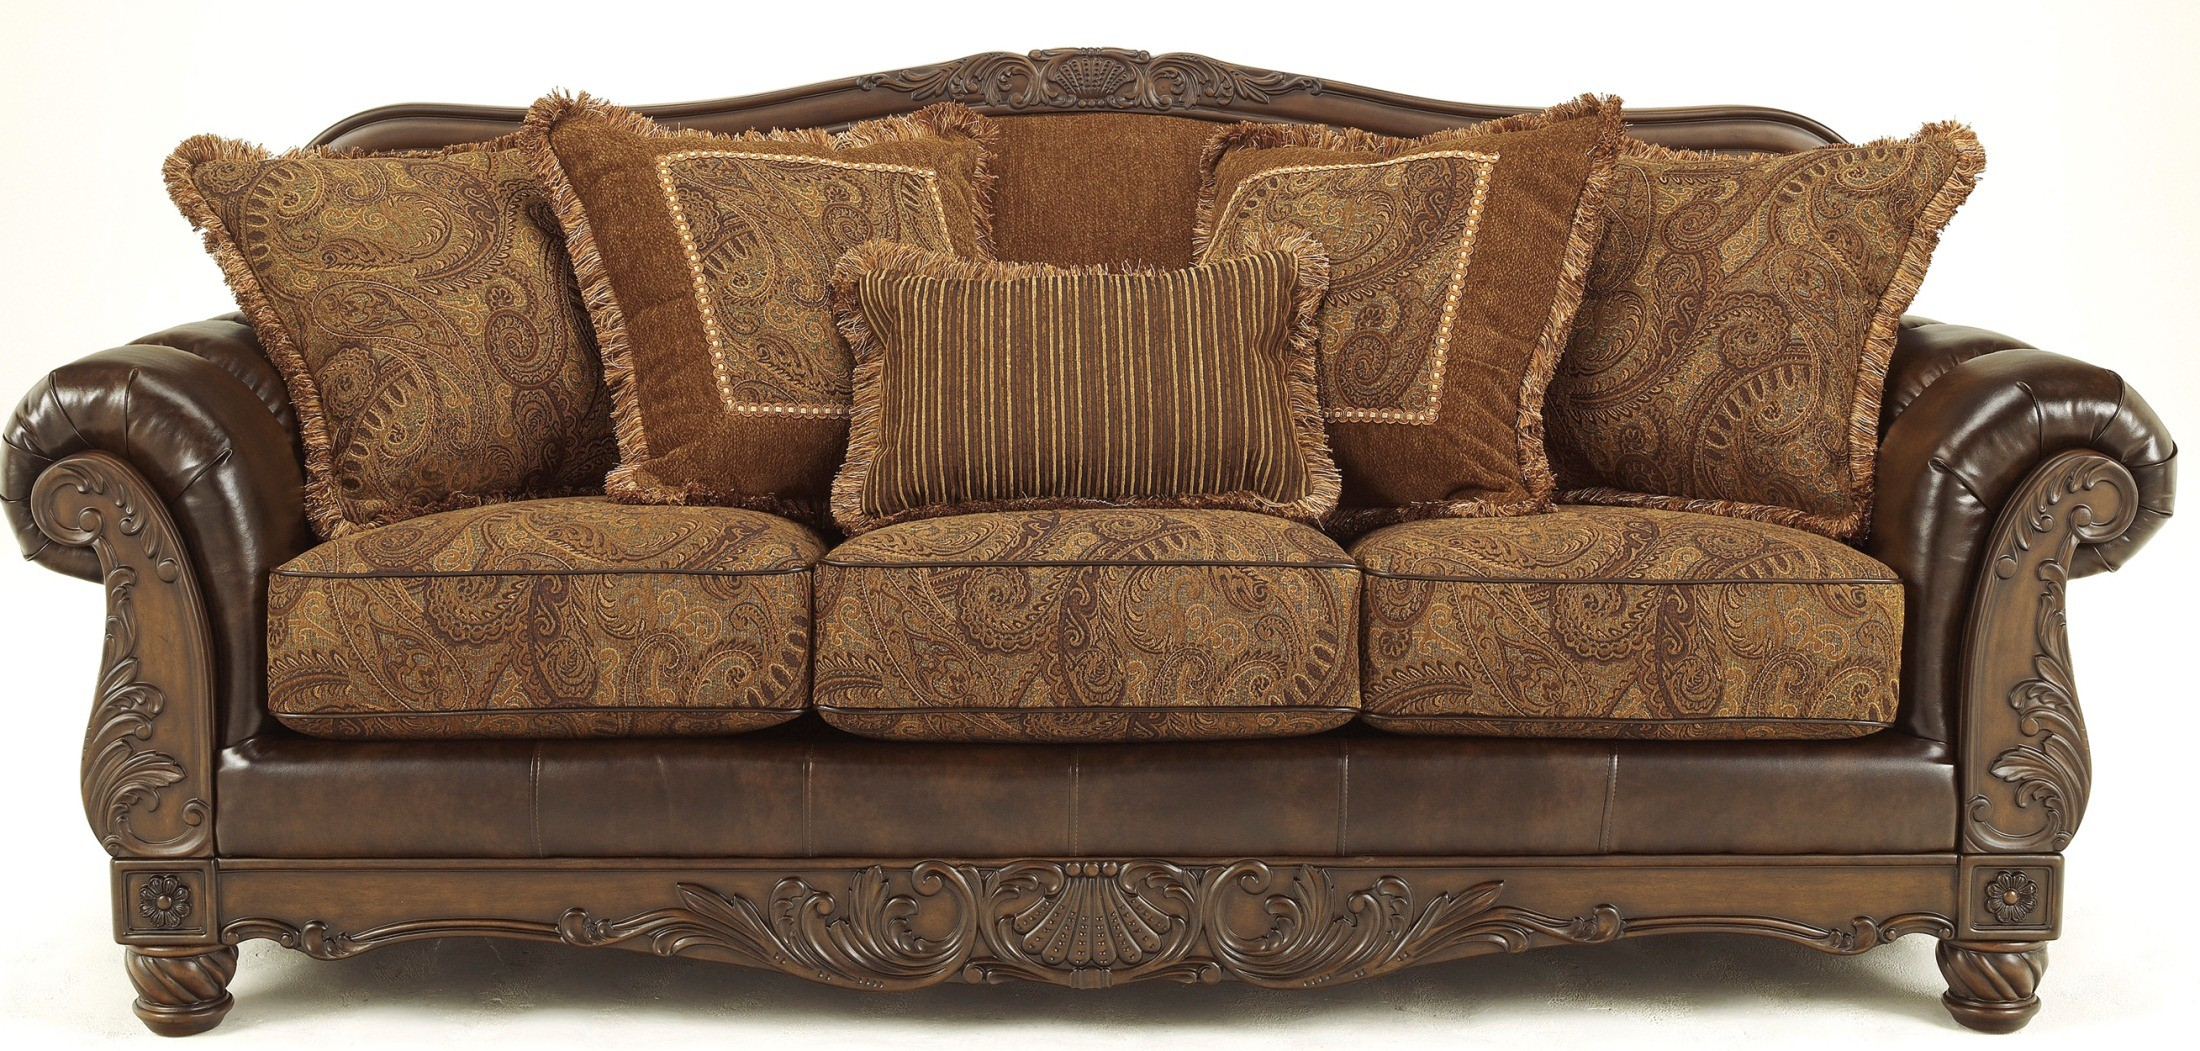 Fresco durablend antique sofa from ashley 6310038 for Front room furniture sets